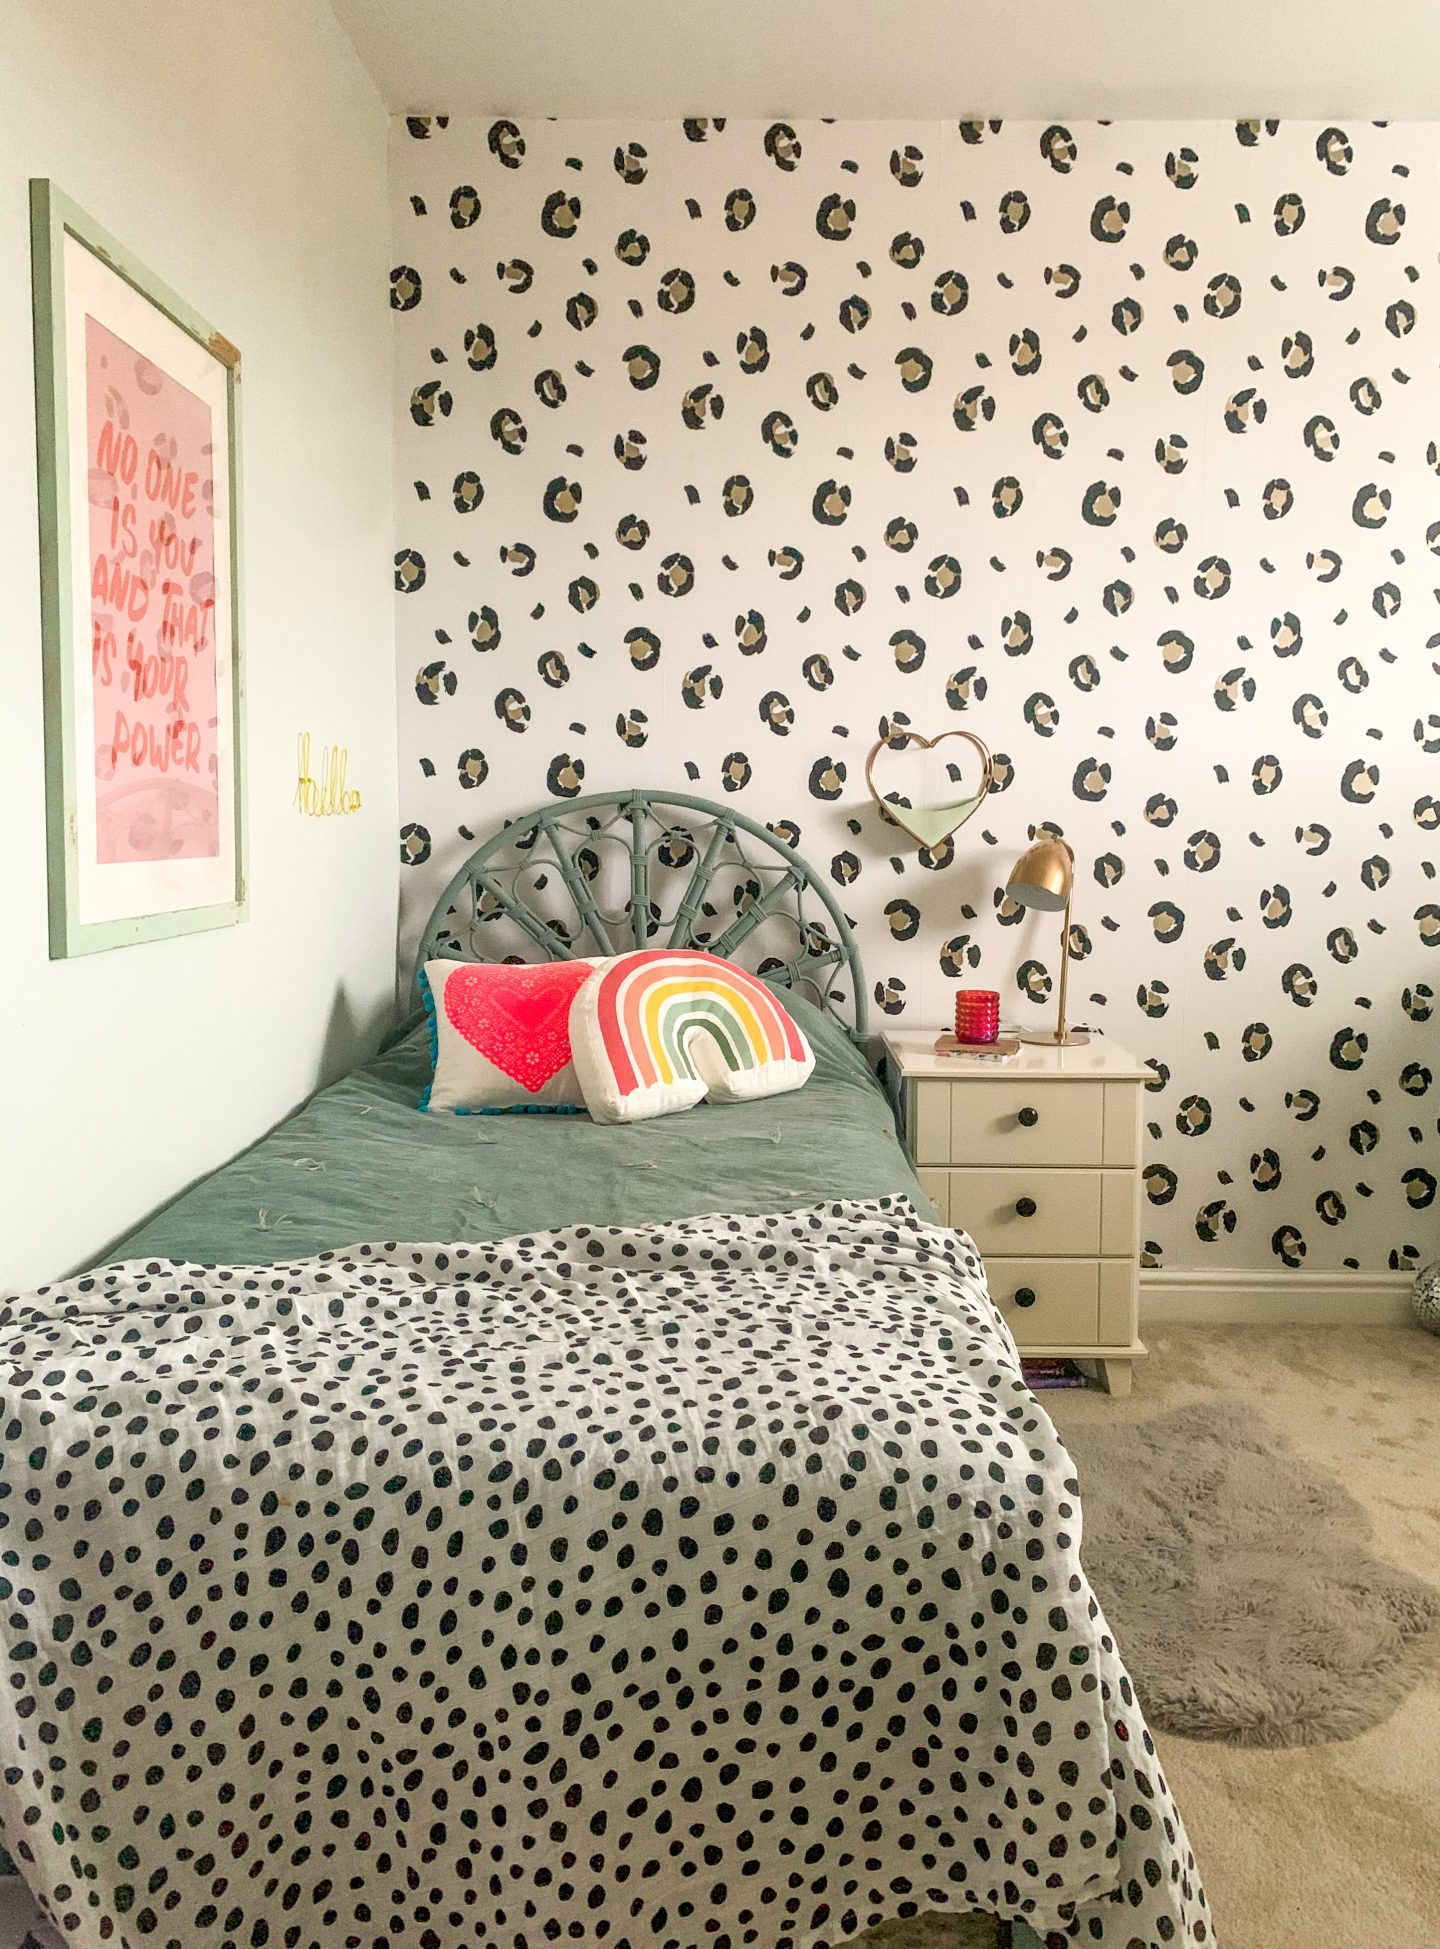 LEOPARD PRINT GIRLS BEDROOM WITH I LOVE WALLPAPER